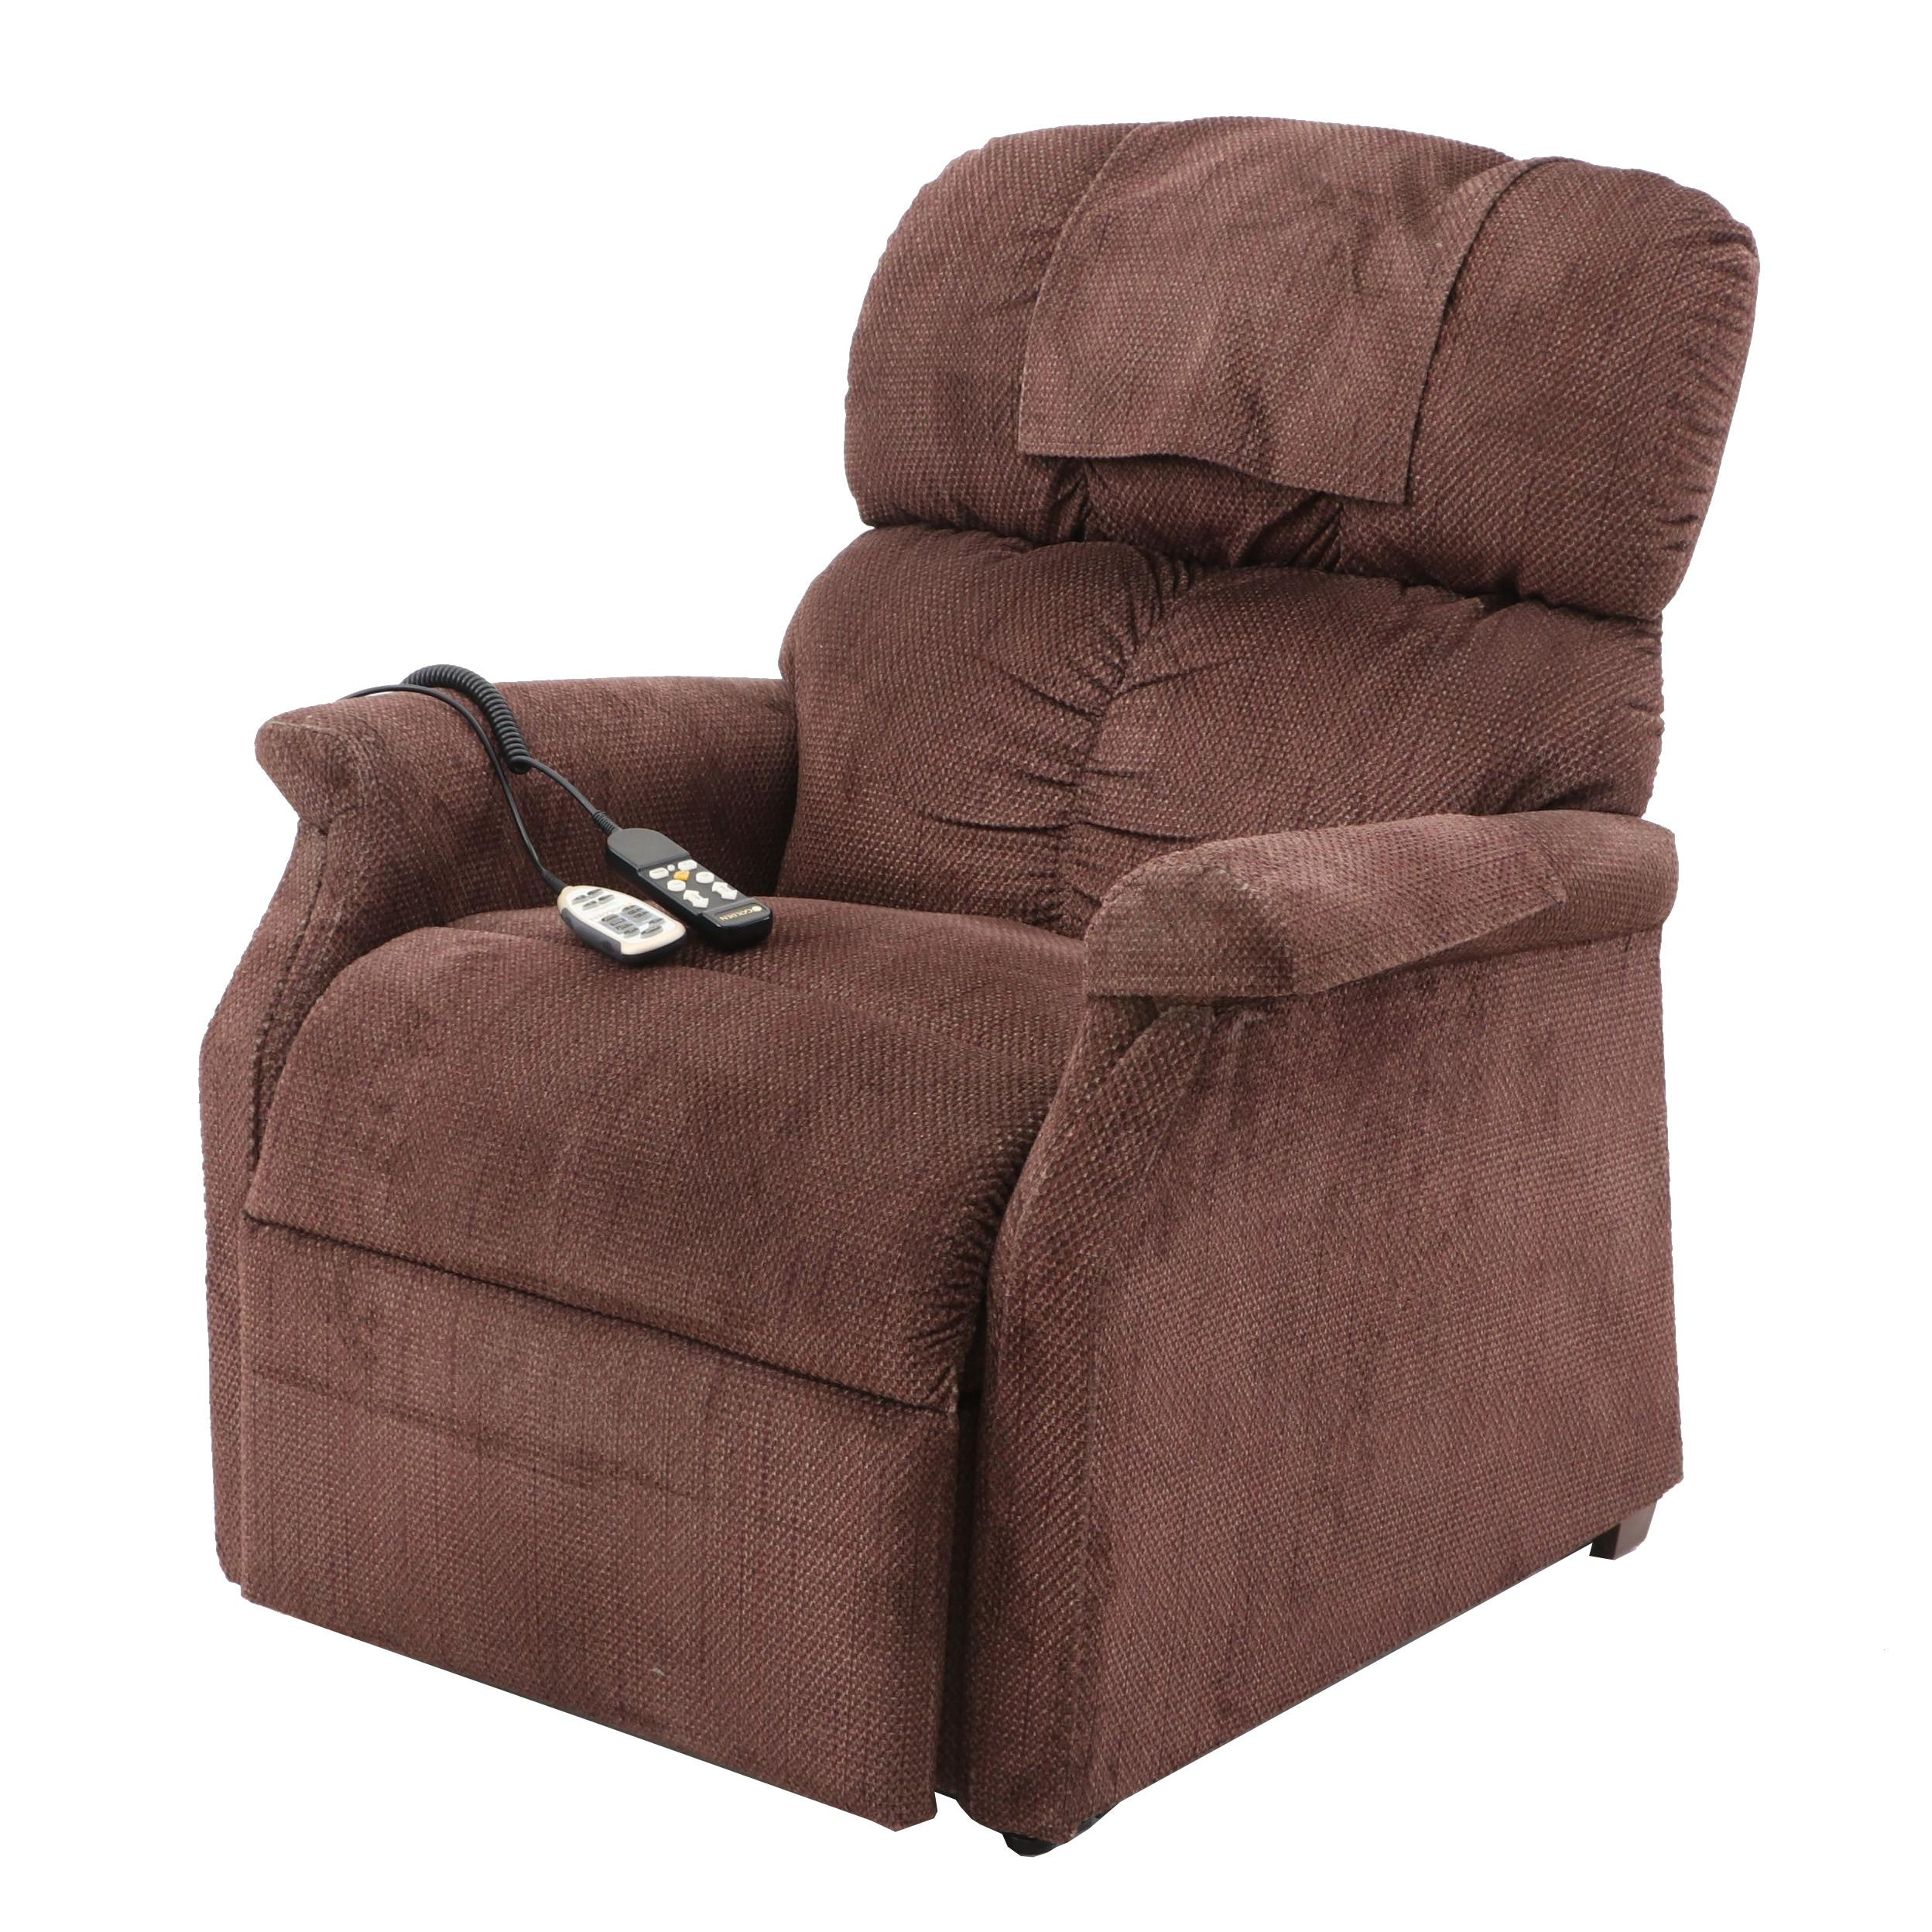 Golden Power Lift Reclining Chair with Remotes for Lift, Recline, and Massage